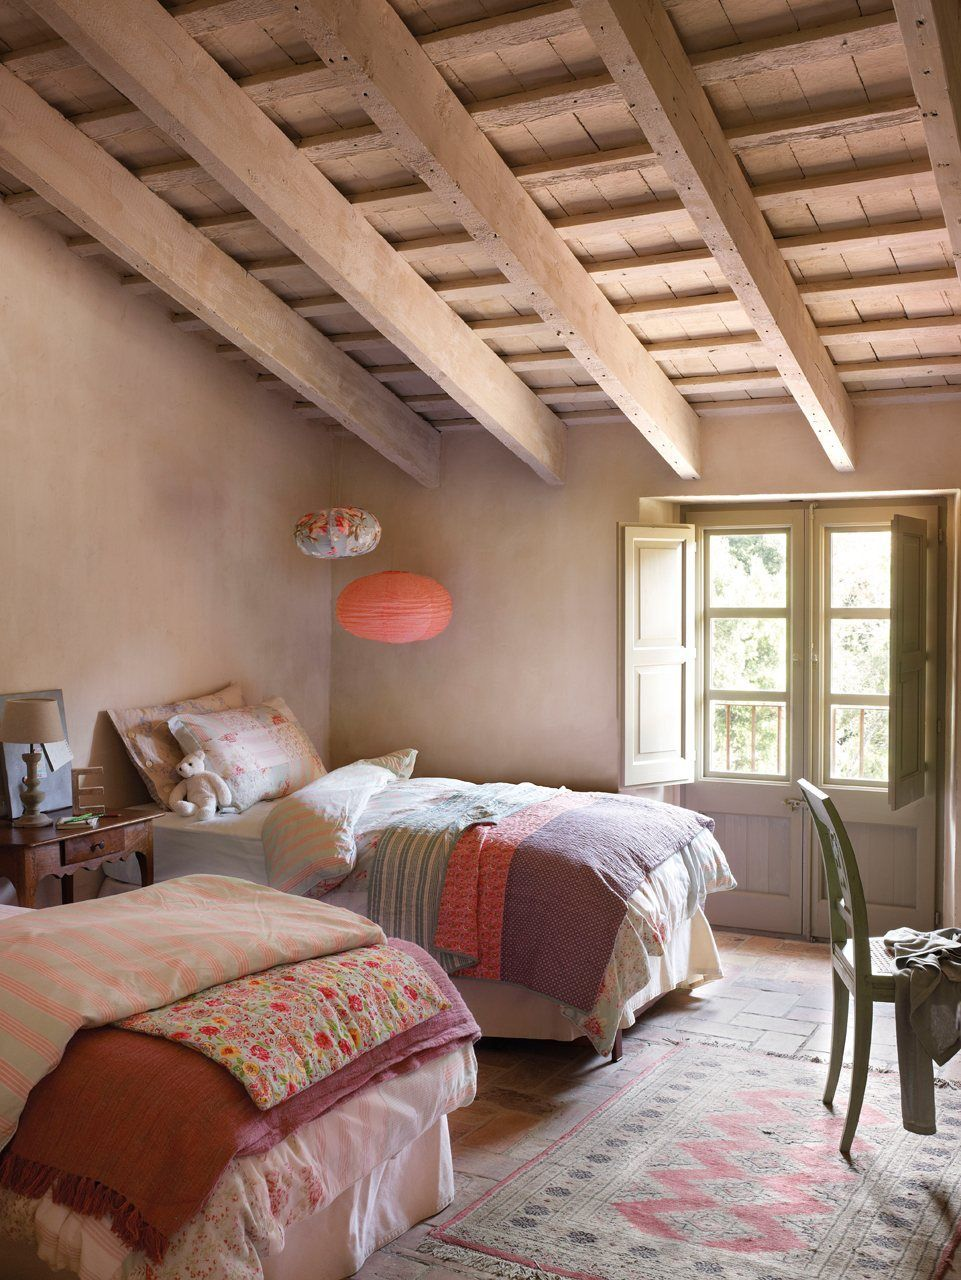 13 Superb Attic Room Meaning In Hindi Ideas In 2020 Home Beautiful Bedrooms Cozy House